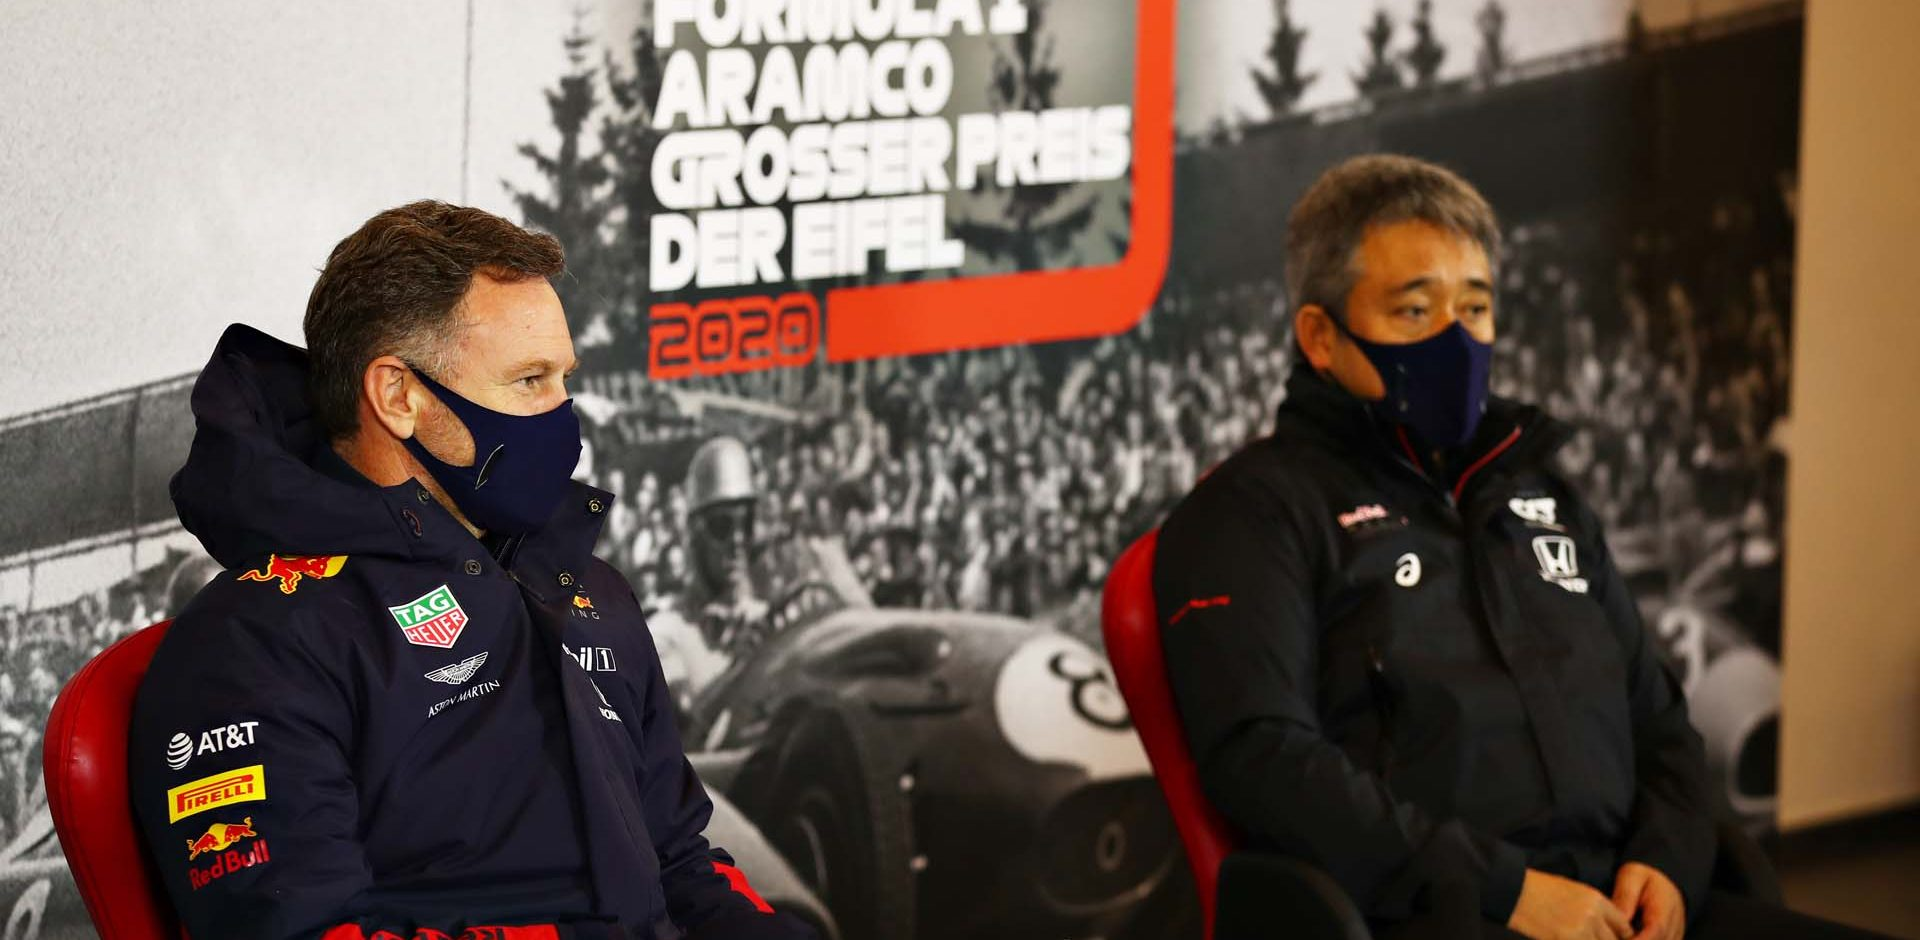 NUERBURG, GERMANY - OCTOBER 09: Red Bull Racing Team Principal Christian Horner and Masashi Yamamoto of Honda talk in the Team Principals Press Conference during practice ahead of the F1 Eifel Grand Prix at Nuerburgring on October 09, 2020 in Nuerburg, Germany. (Photo by Joe Portlock/Getty Images)